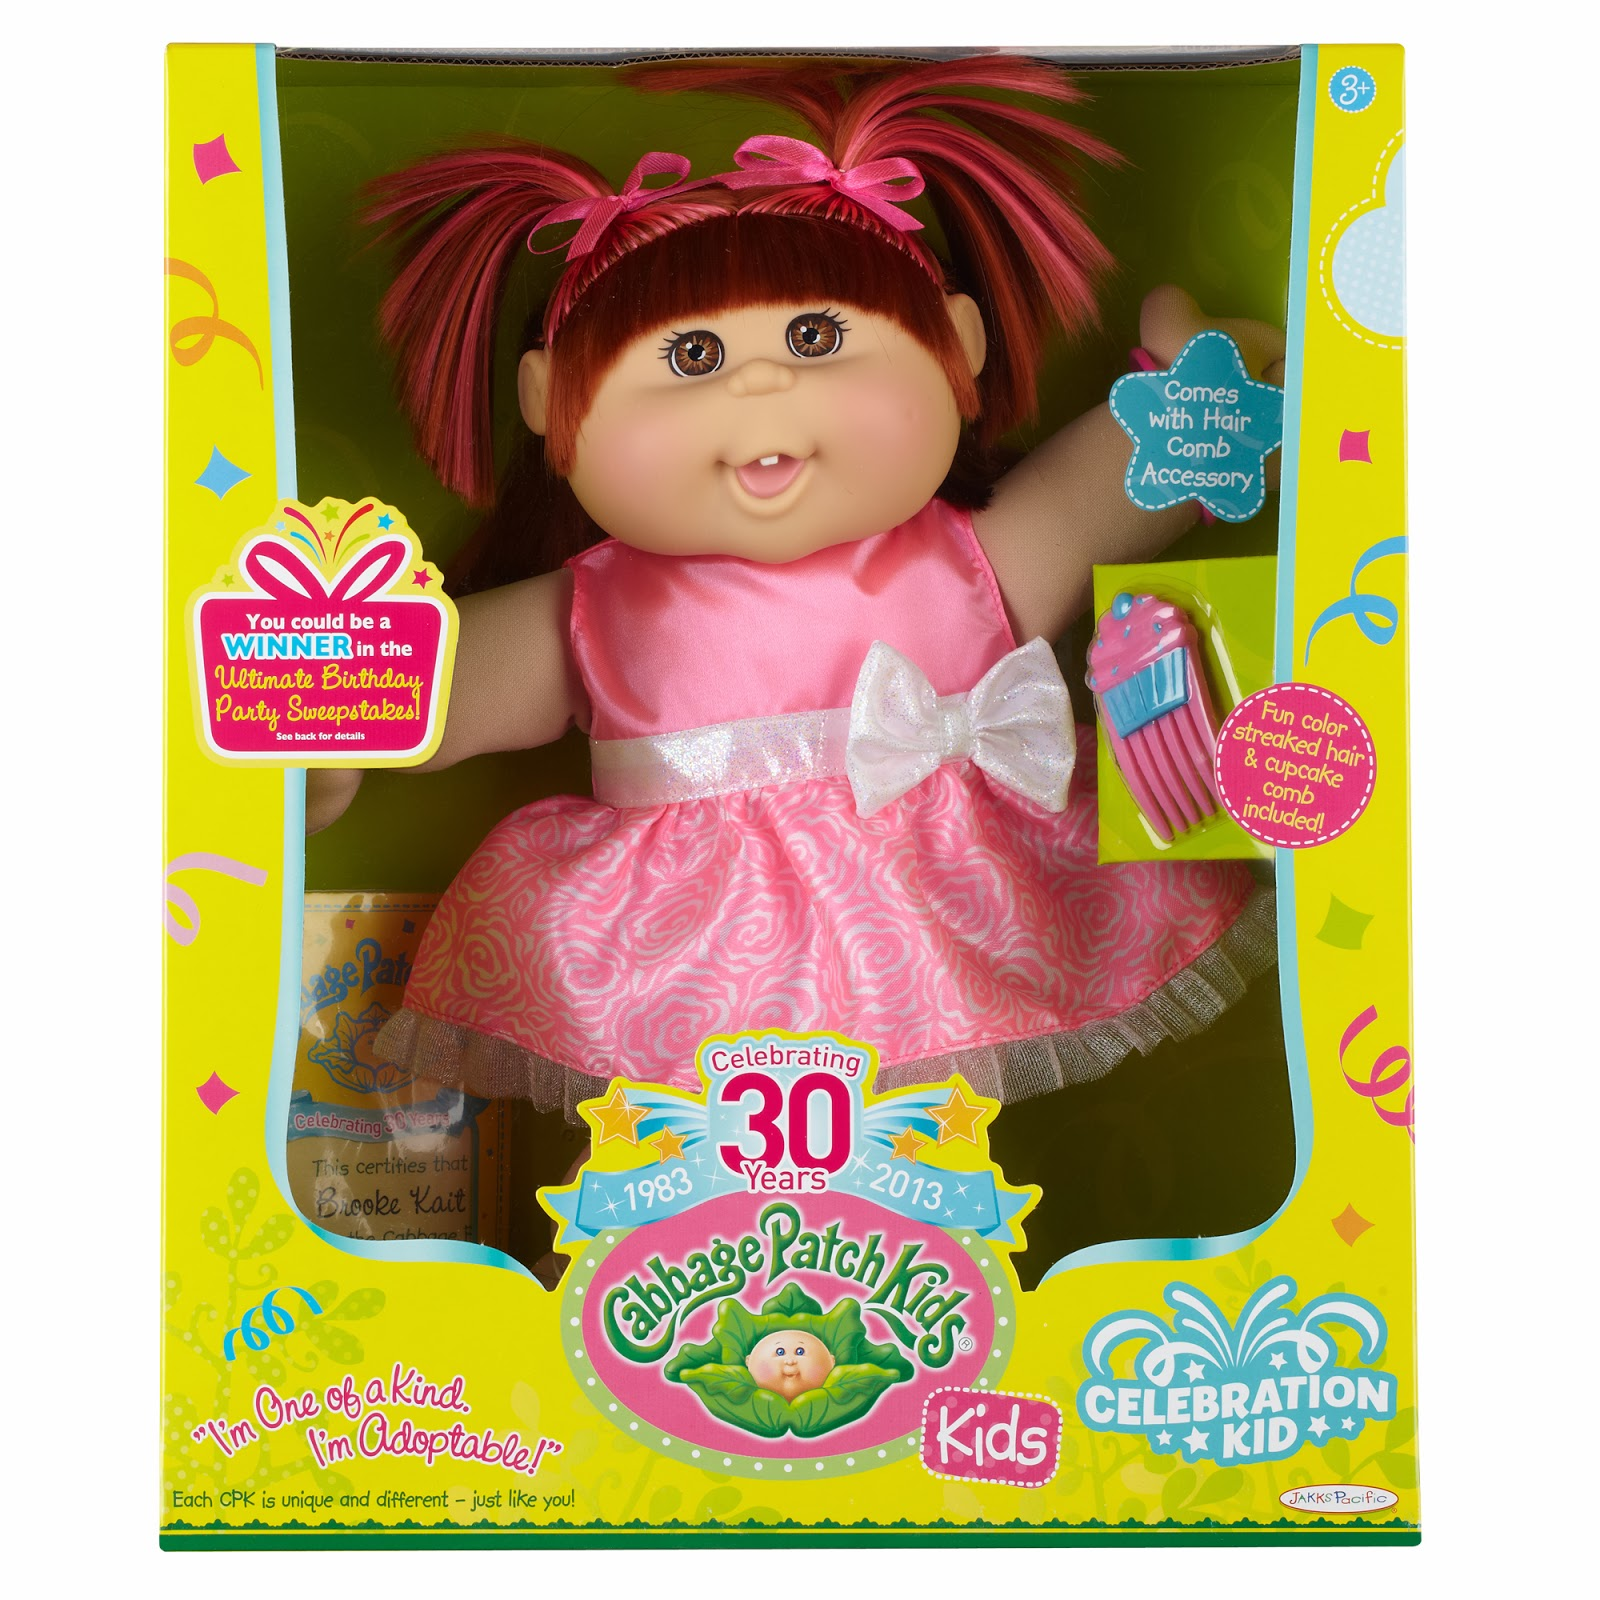 Cabbage patch kids 30th anniversary dolls canadian mom reviews share your favorite childhood toy with your kids by give them a cabbage patch kid that is unique and different just like themeach doll is approx aiddatafo Images